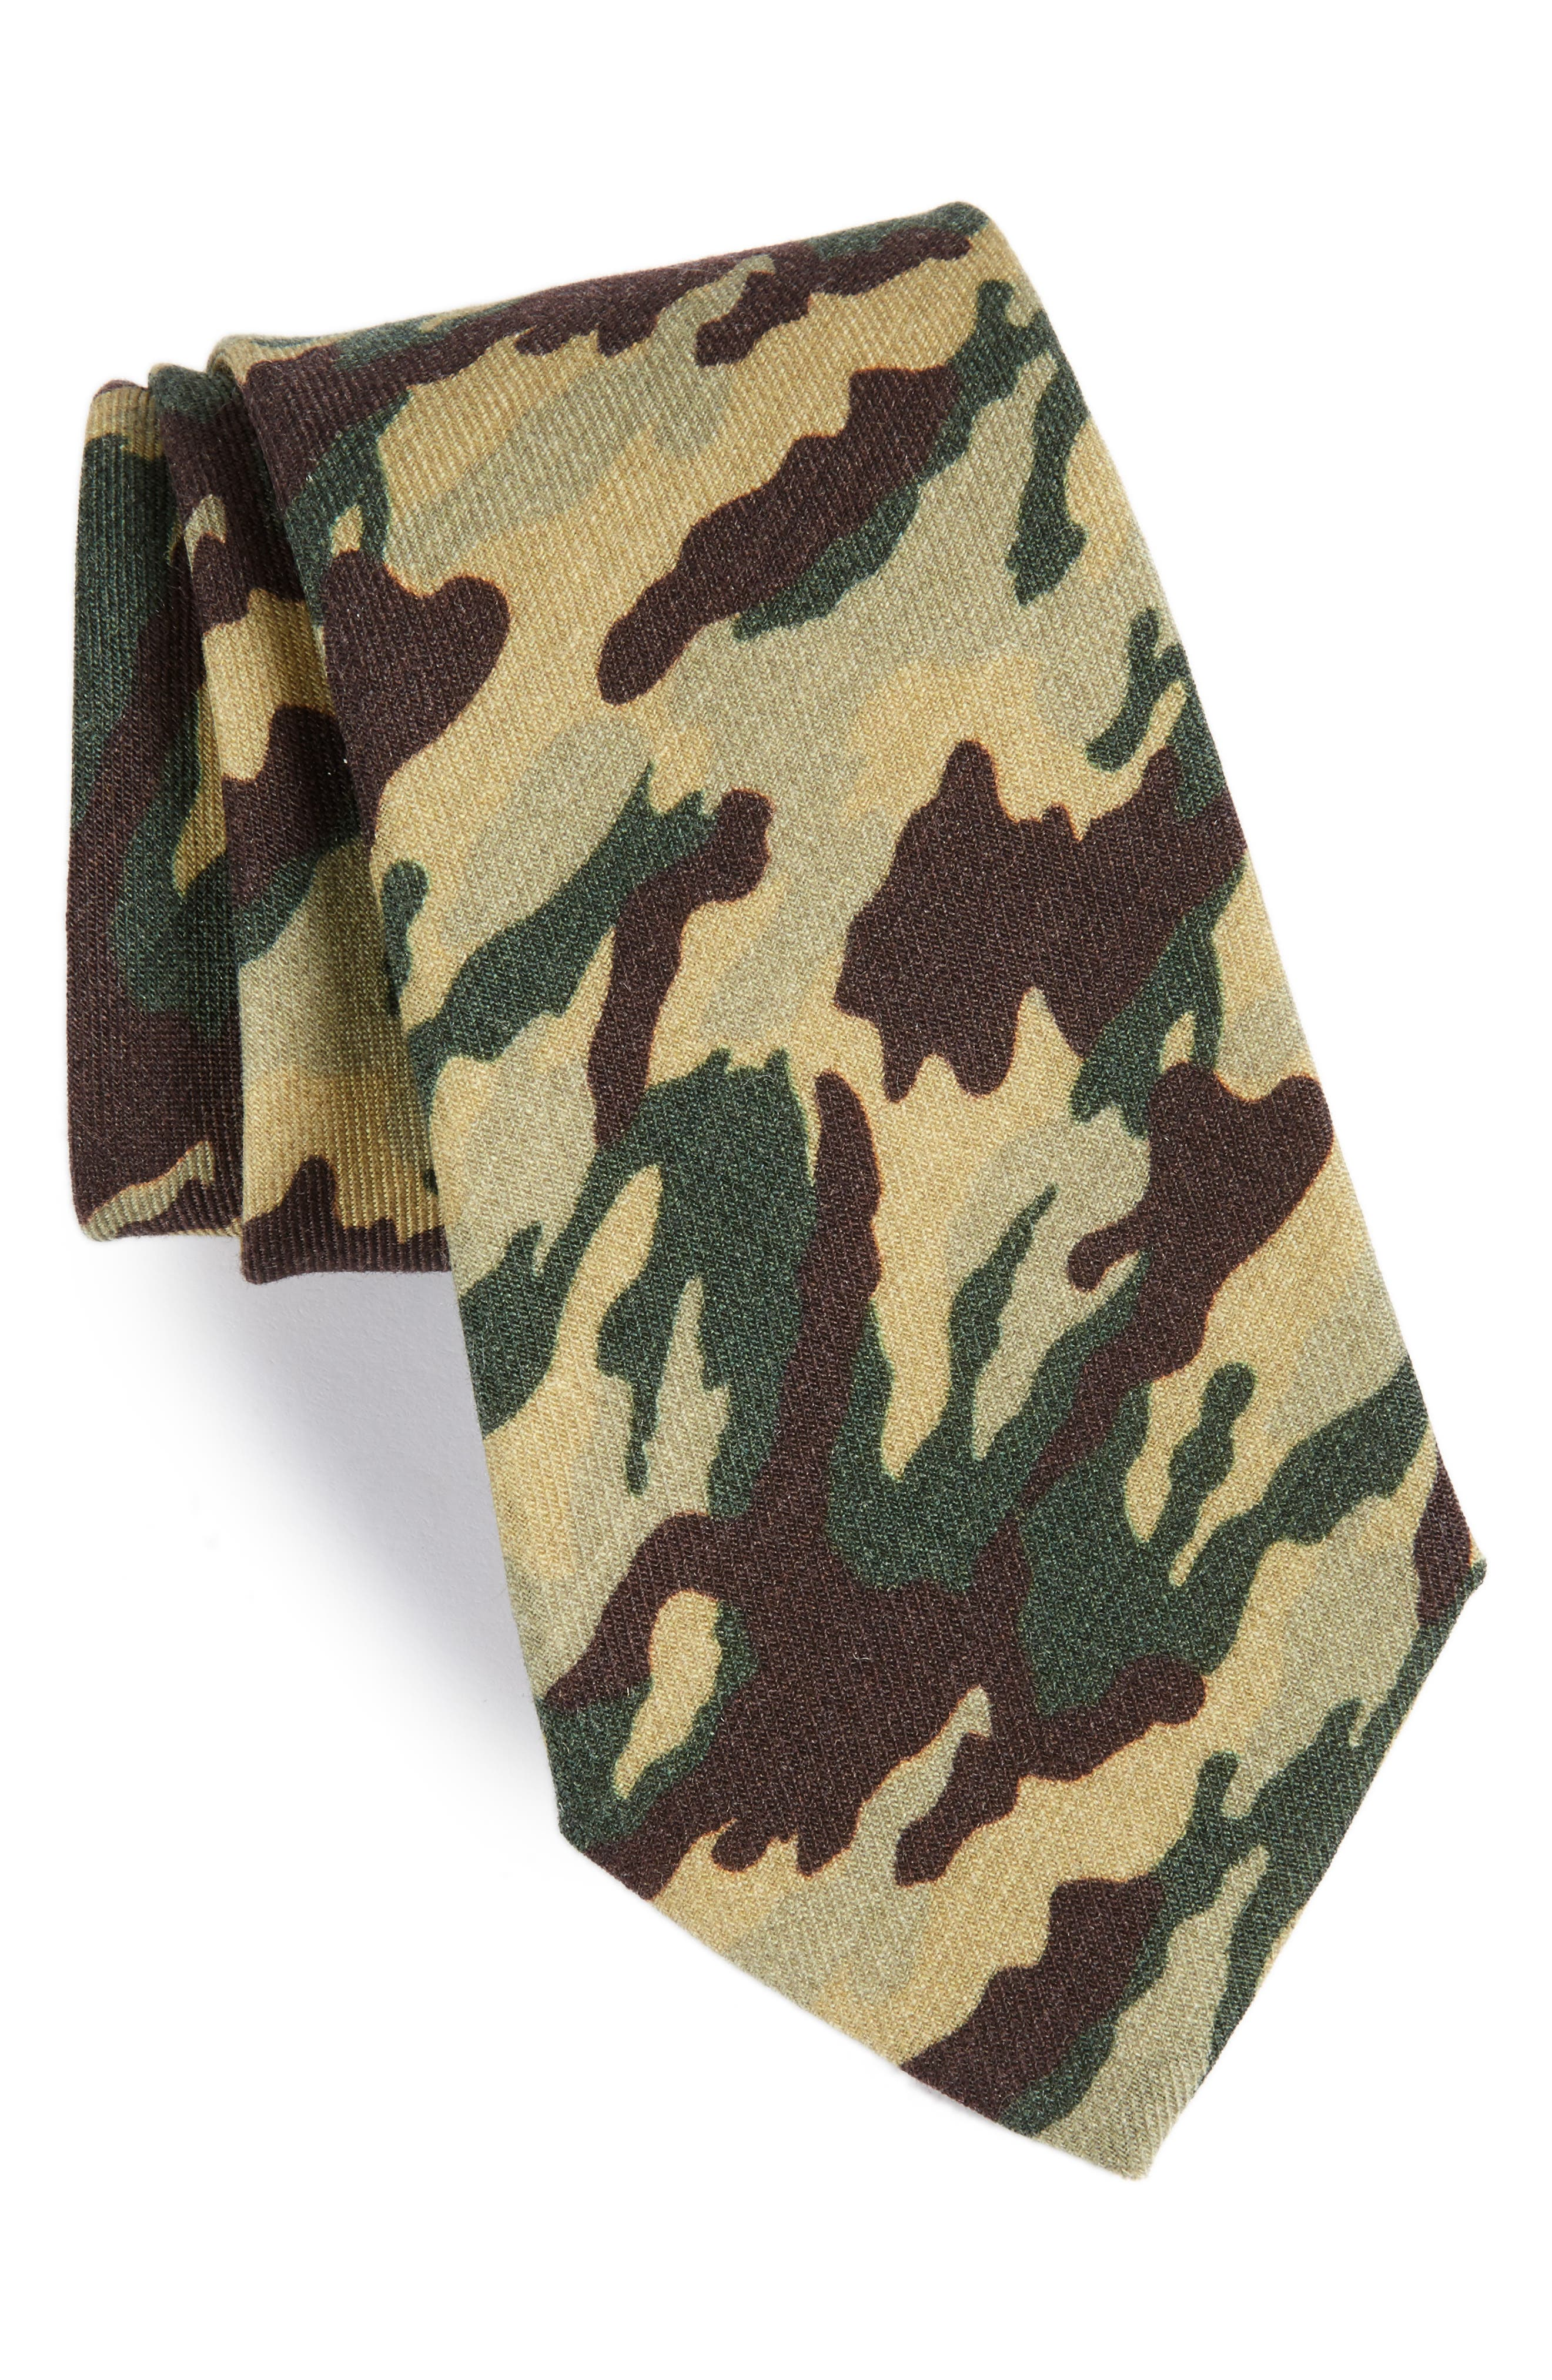 Alternate Image 1 Selected - Michael Bastian Camo Print Wool Tie